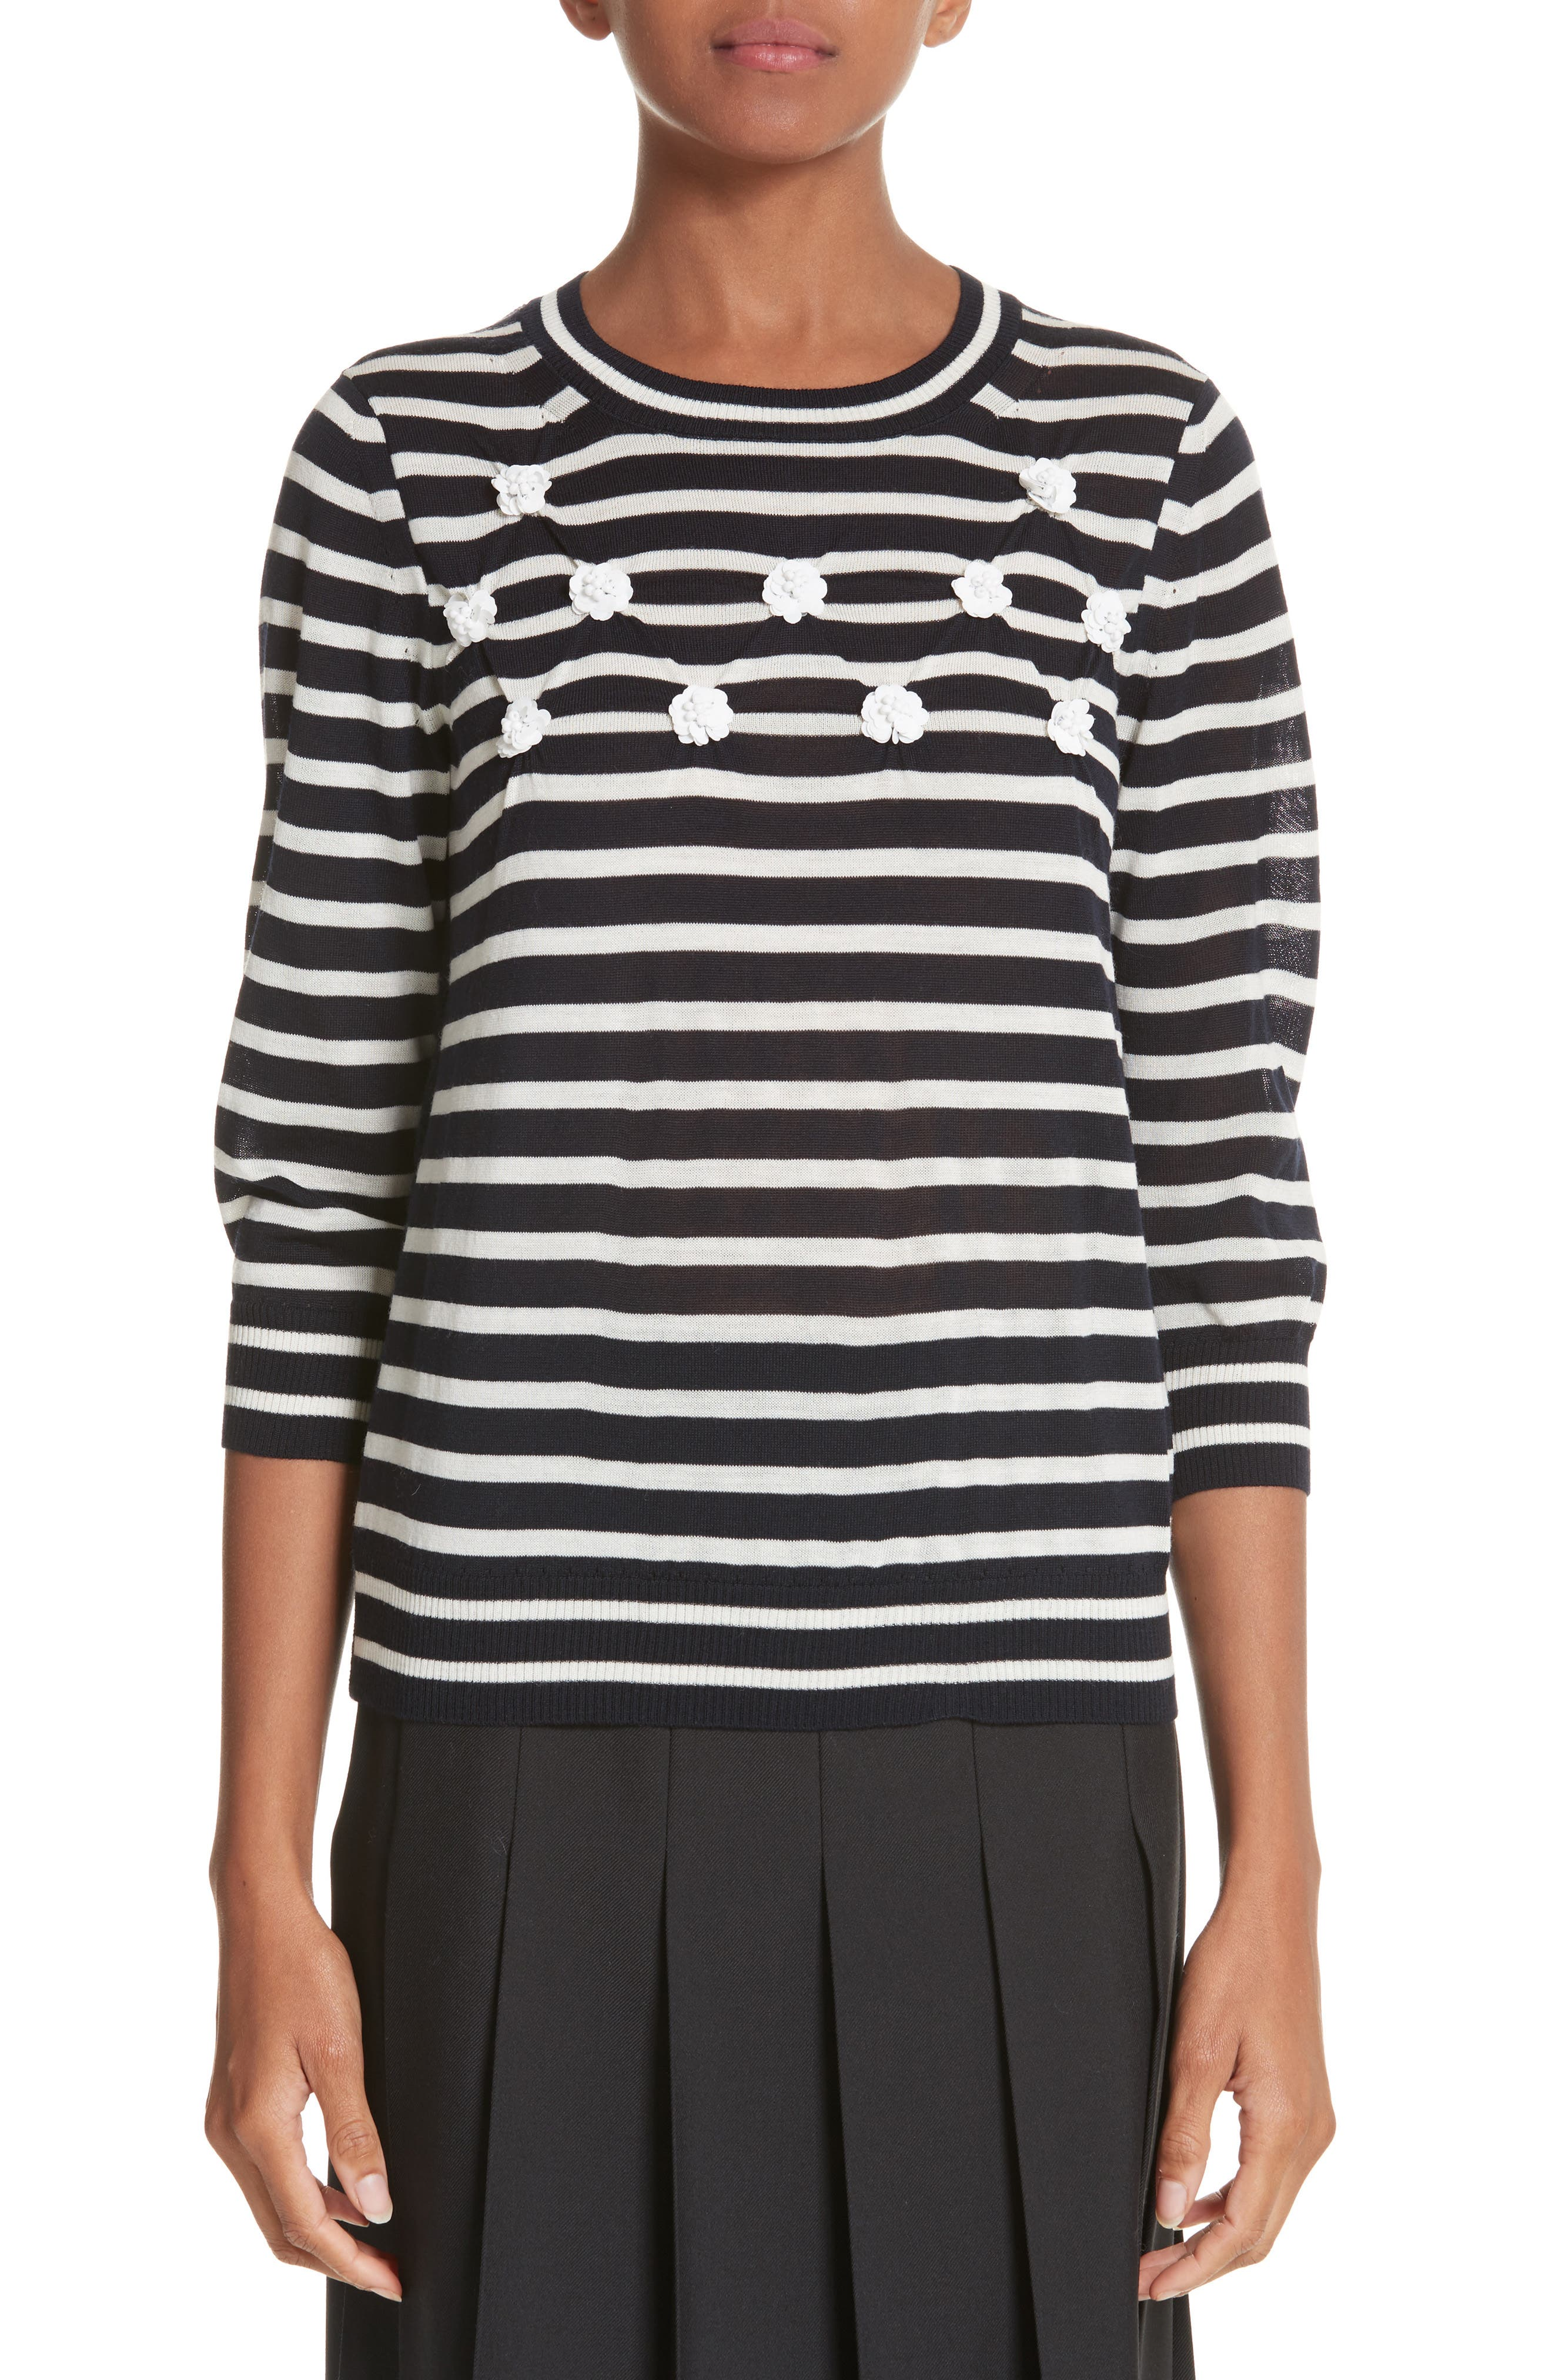 Alternate Image 1 Selected - Tricot Comme des Garçons Button Back Stripe Sweater